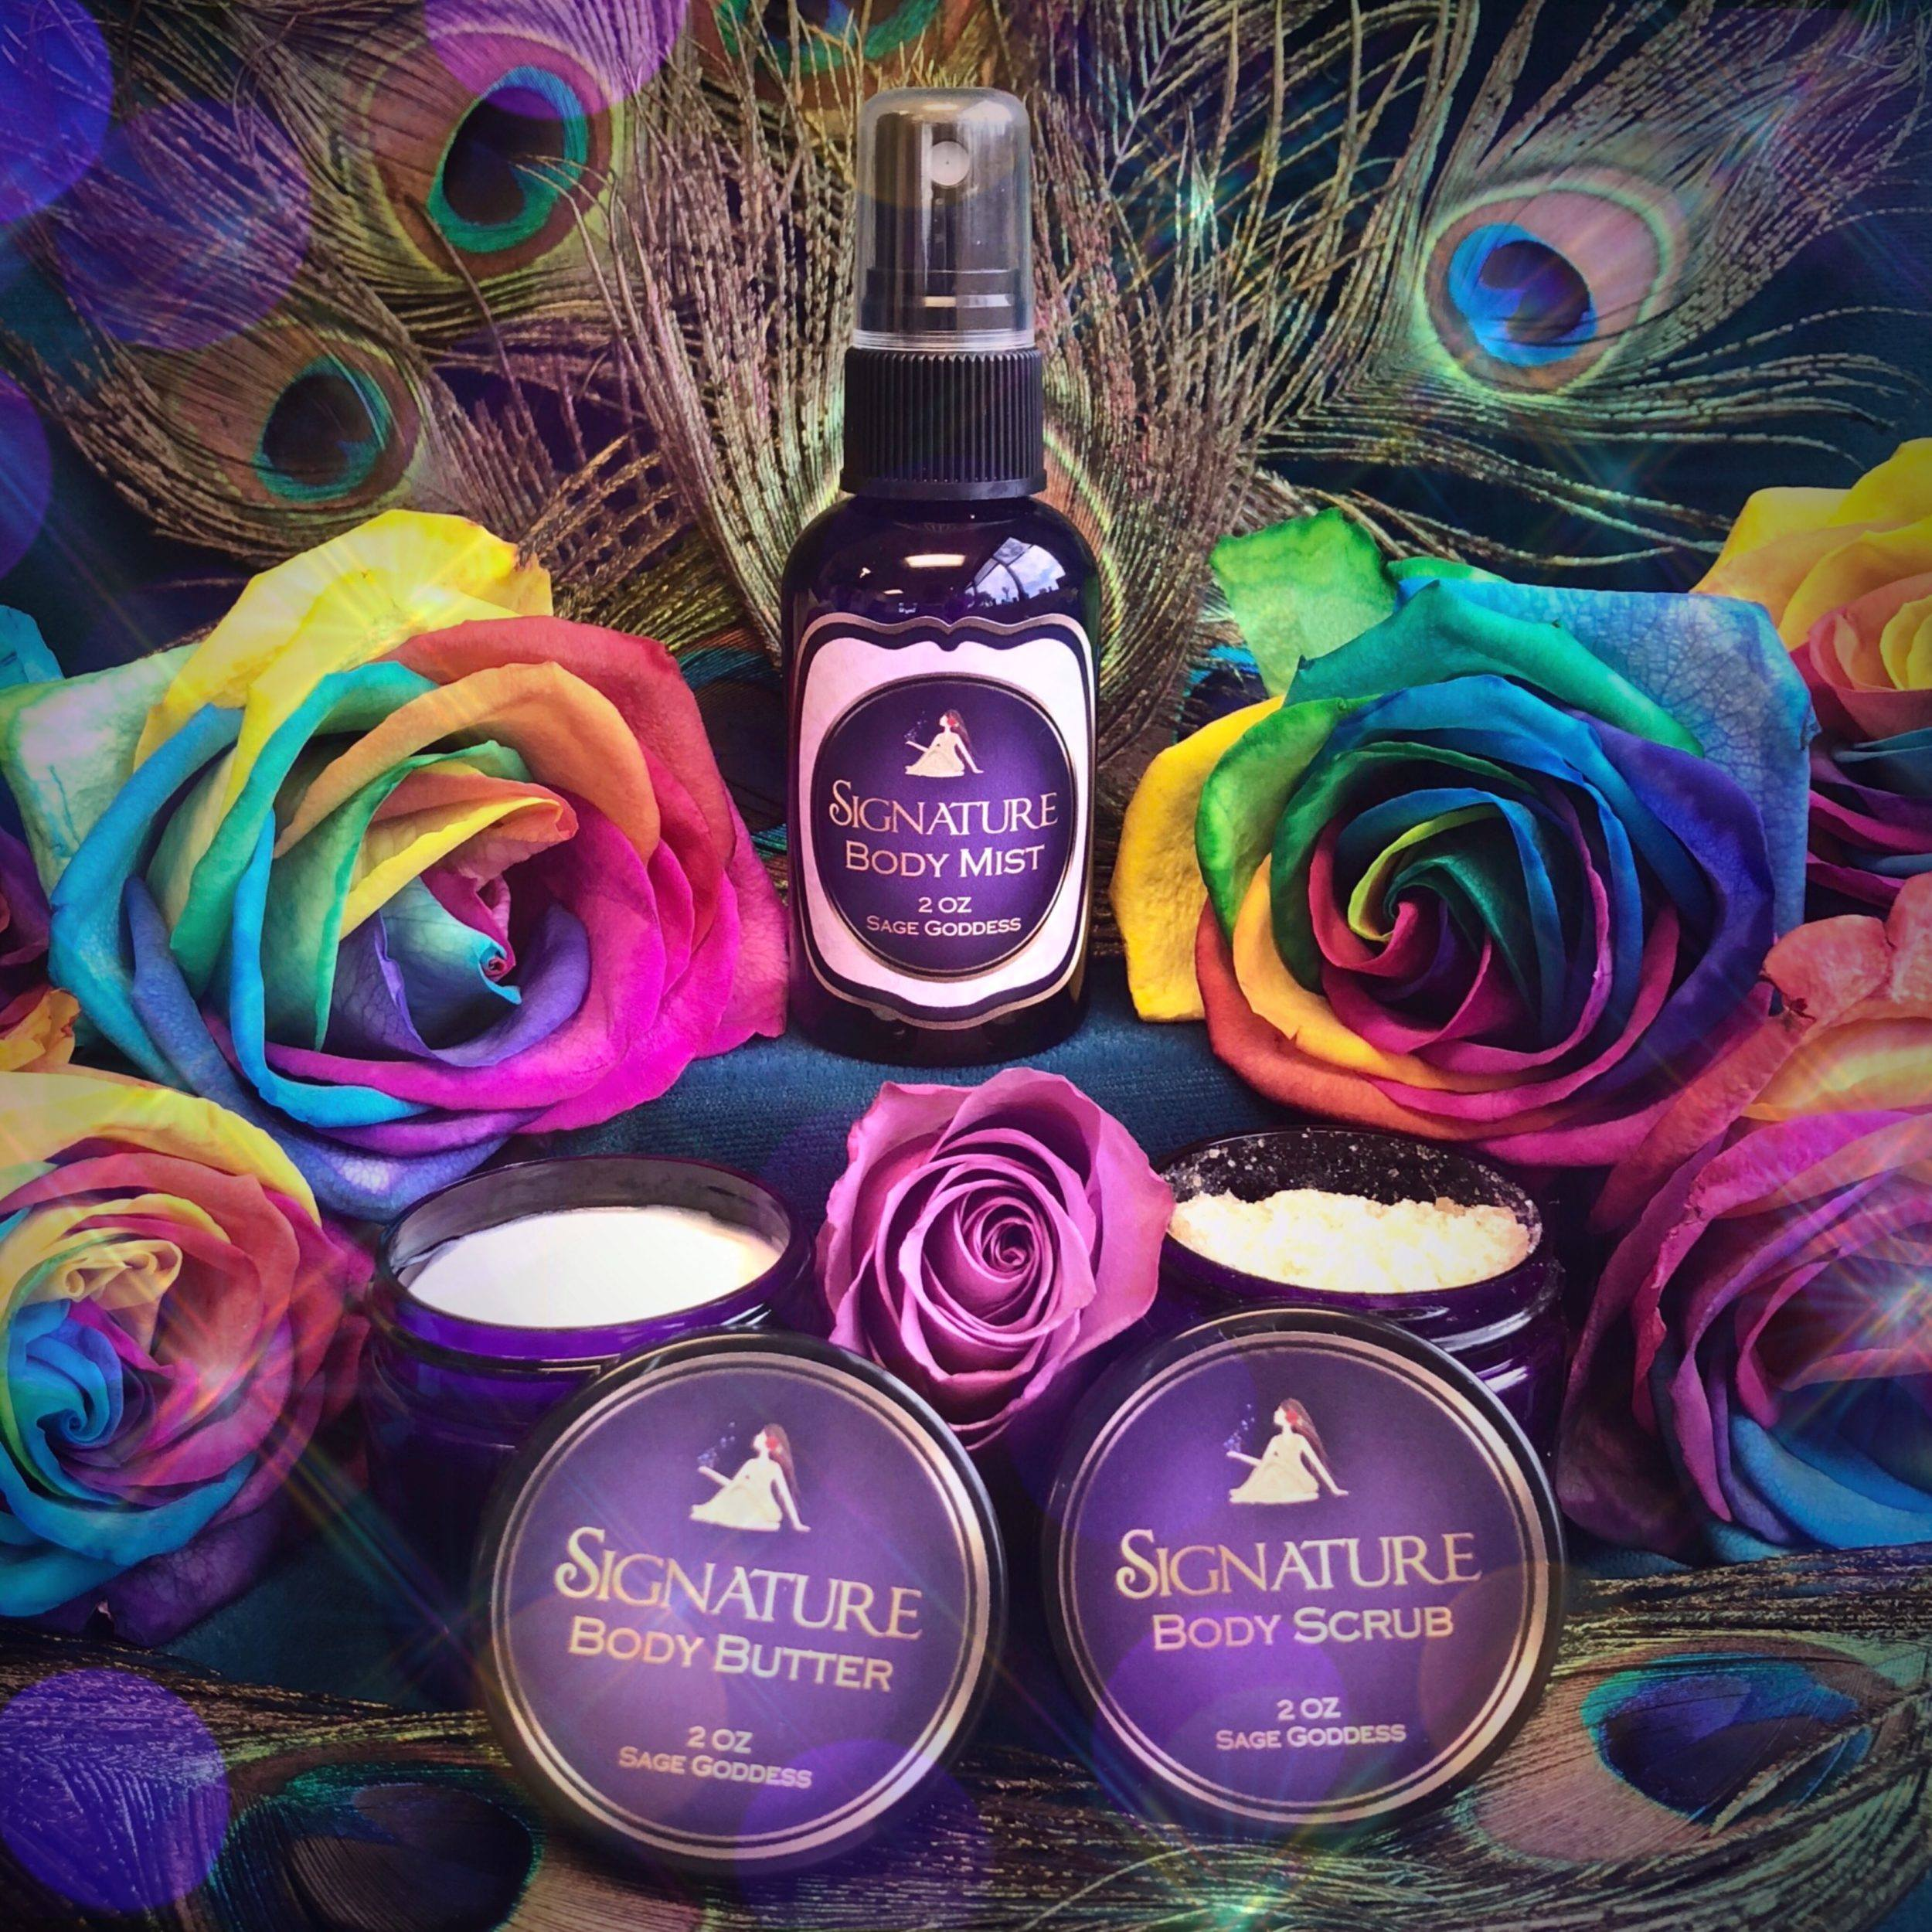 SG Signature Bath Set for sensuality and luxurious pampering